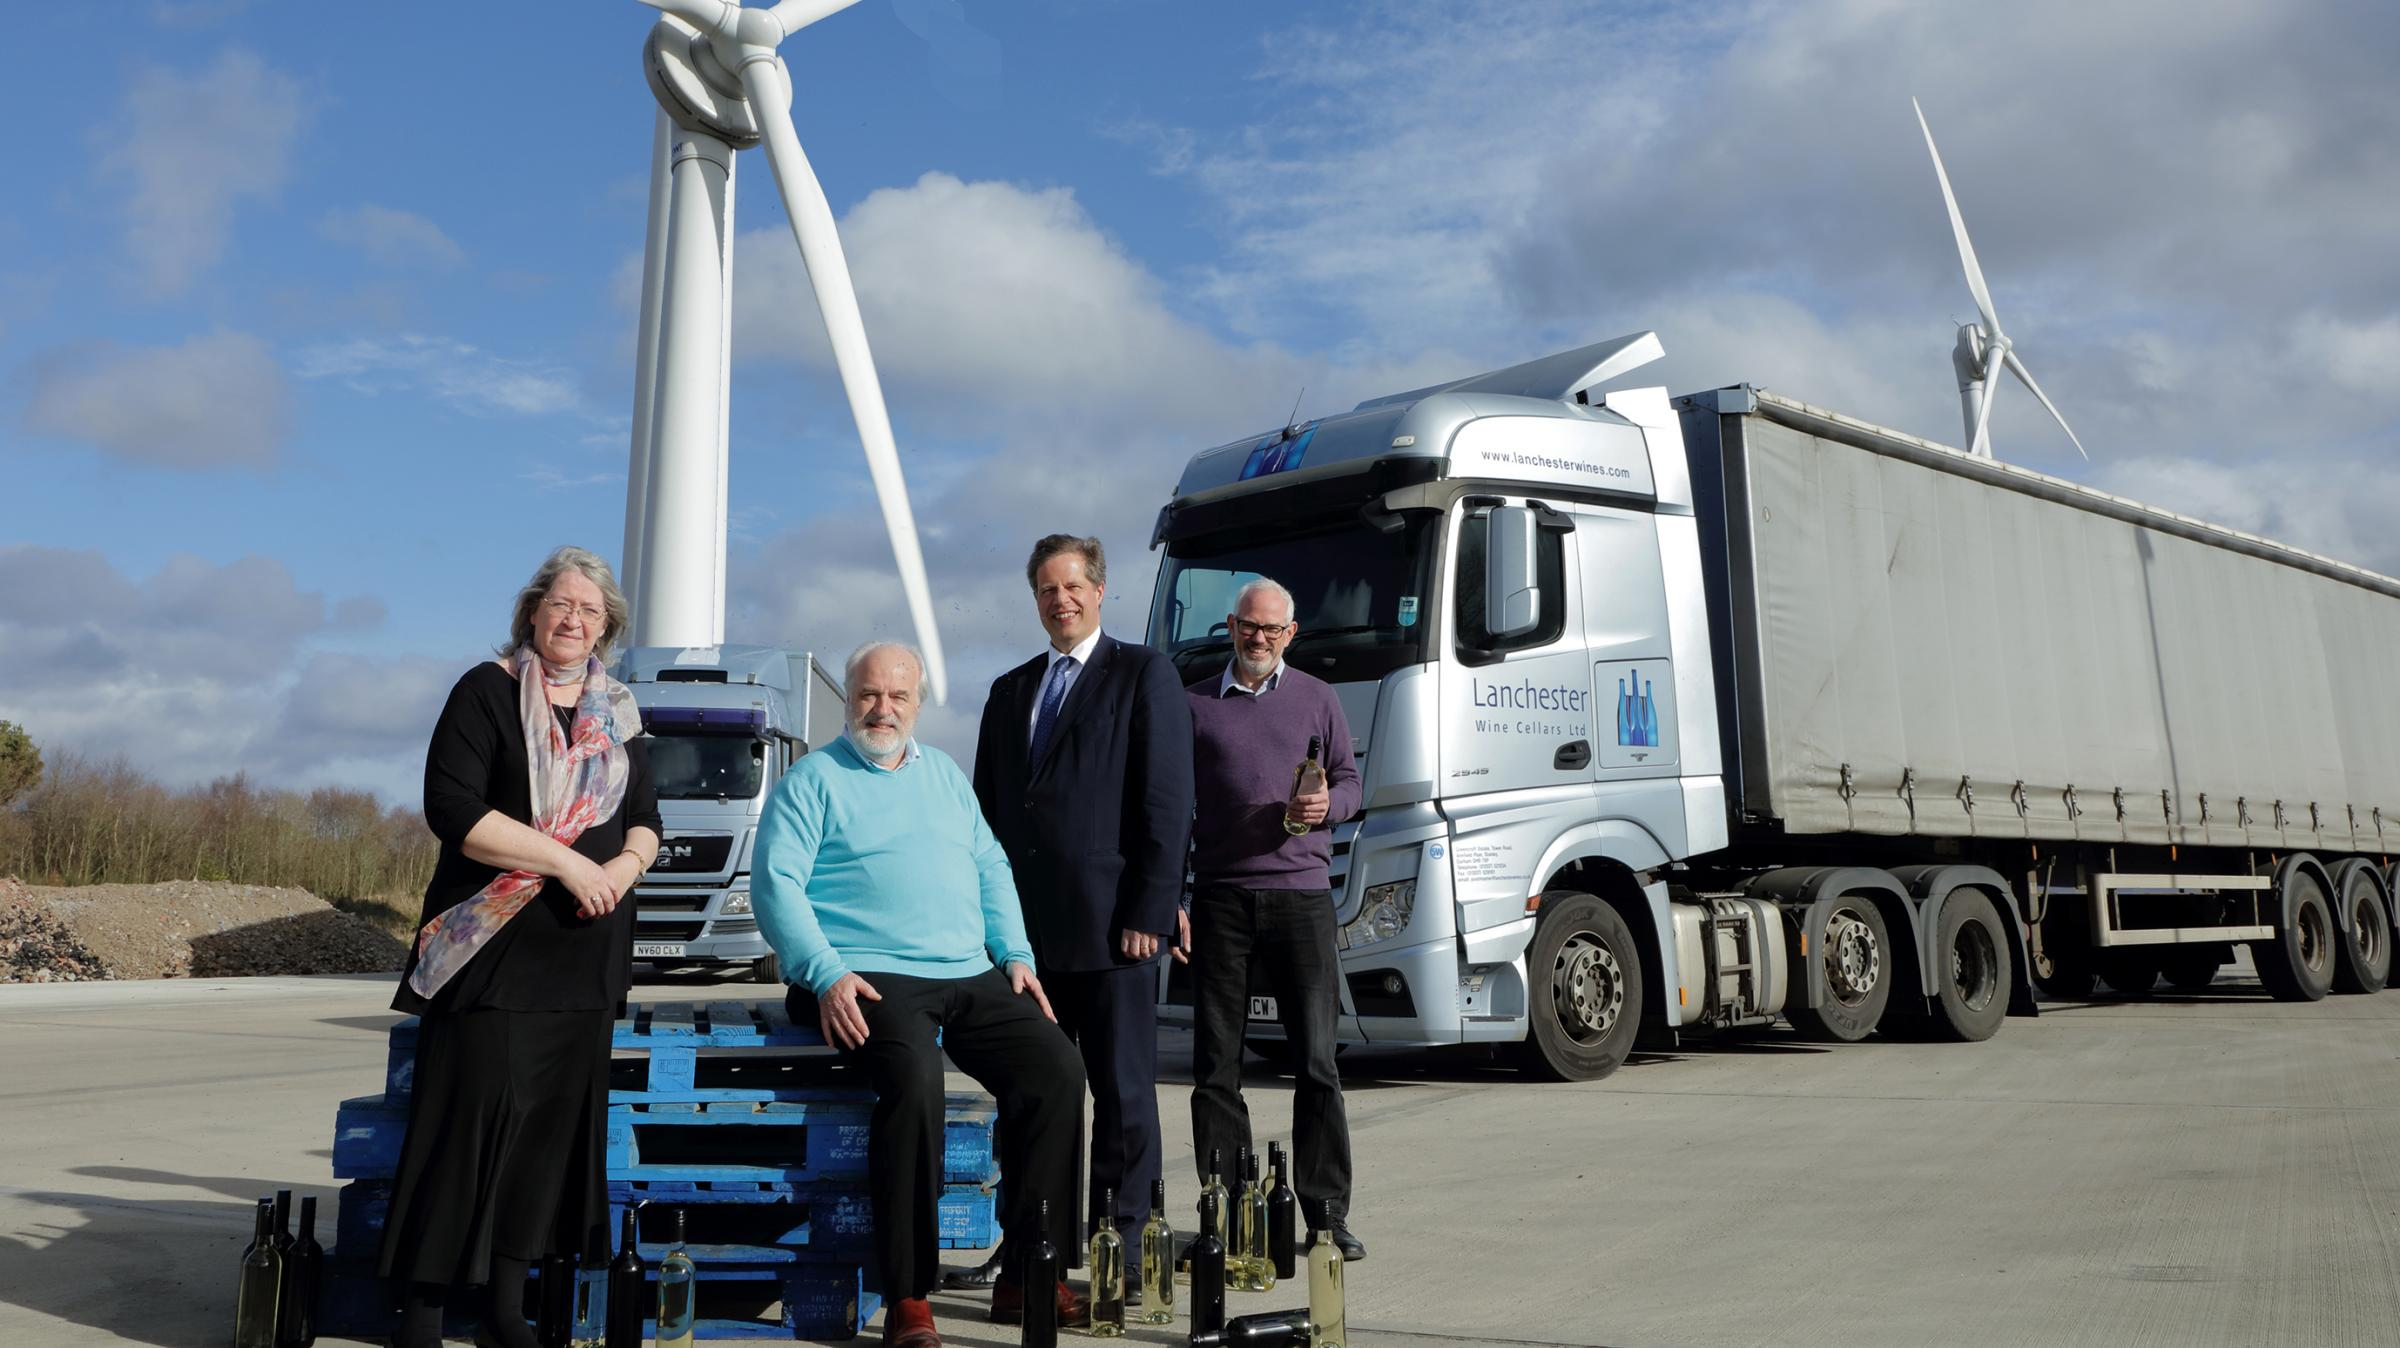 BOTTLING IT: Pictured, from left, Veronica and Tony Cleary, of Lanchester Group, Julian Critchlow, director general of Energy Transformation and Clean Growth at the Department for Business, Energy and Industrial Strategy and Adam Black, head of energy Lan